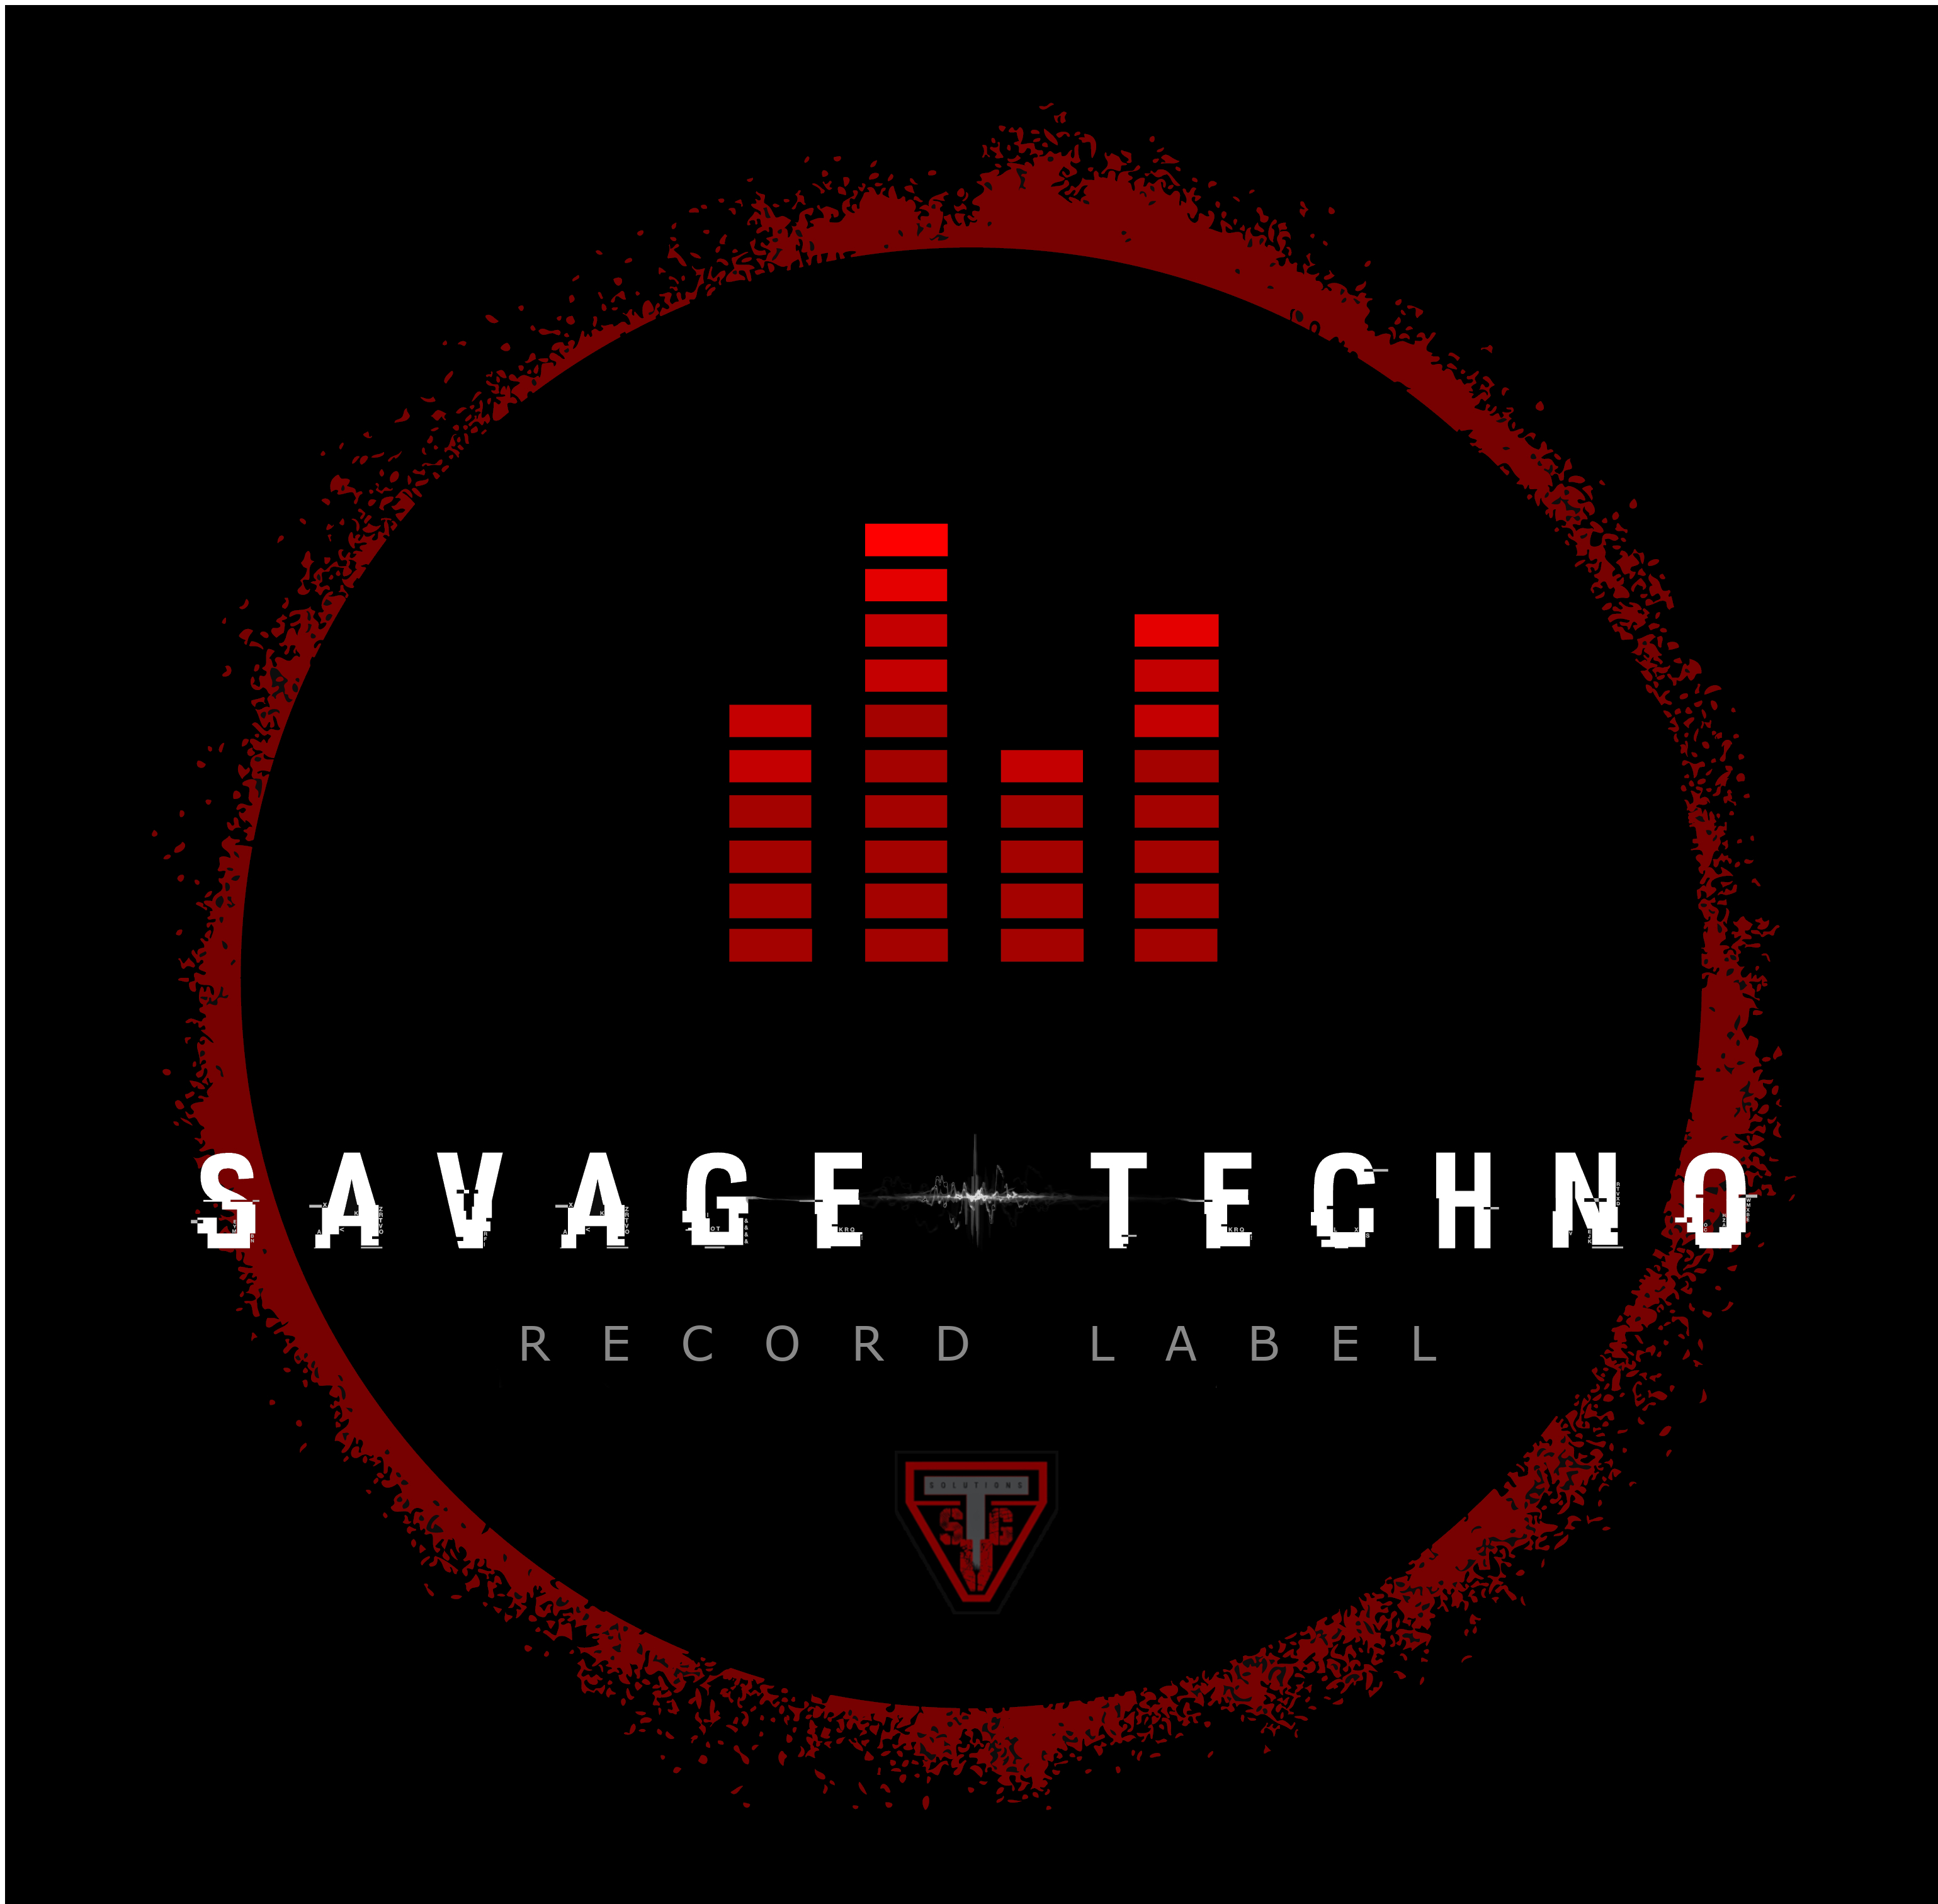 logo_SAVAGE-TECHNO-RECORDS_2019_v1.JPG